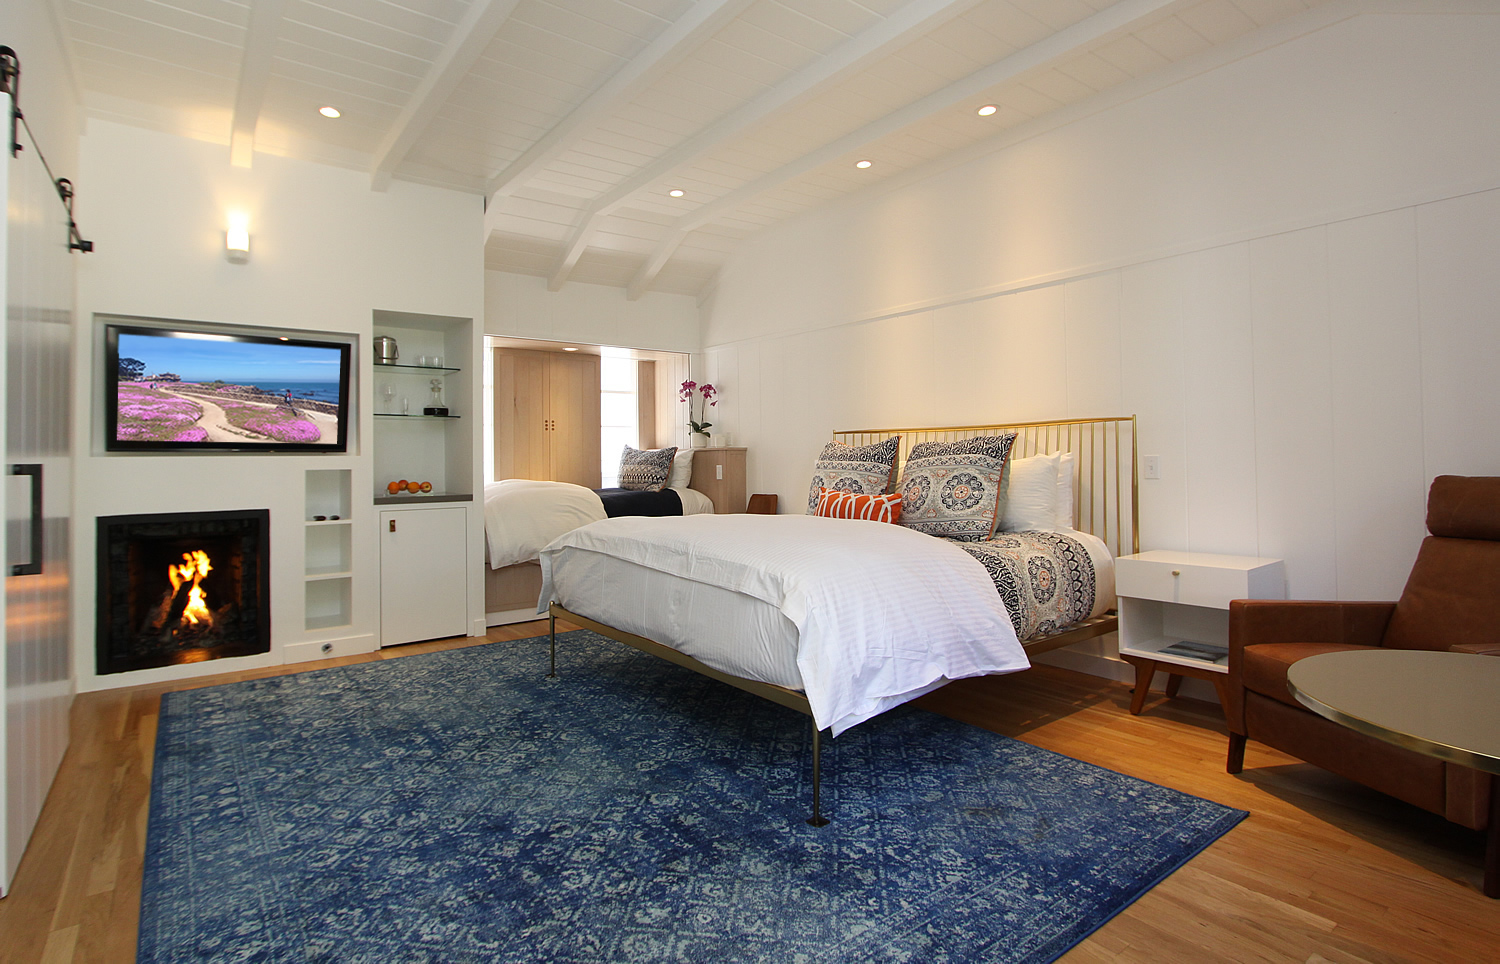 Room with blue carpet, large bed, and TV